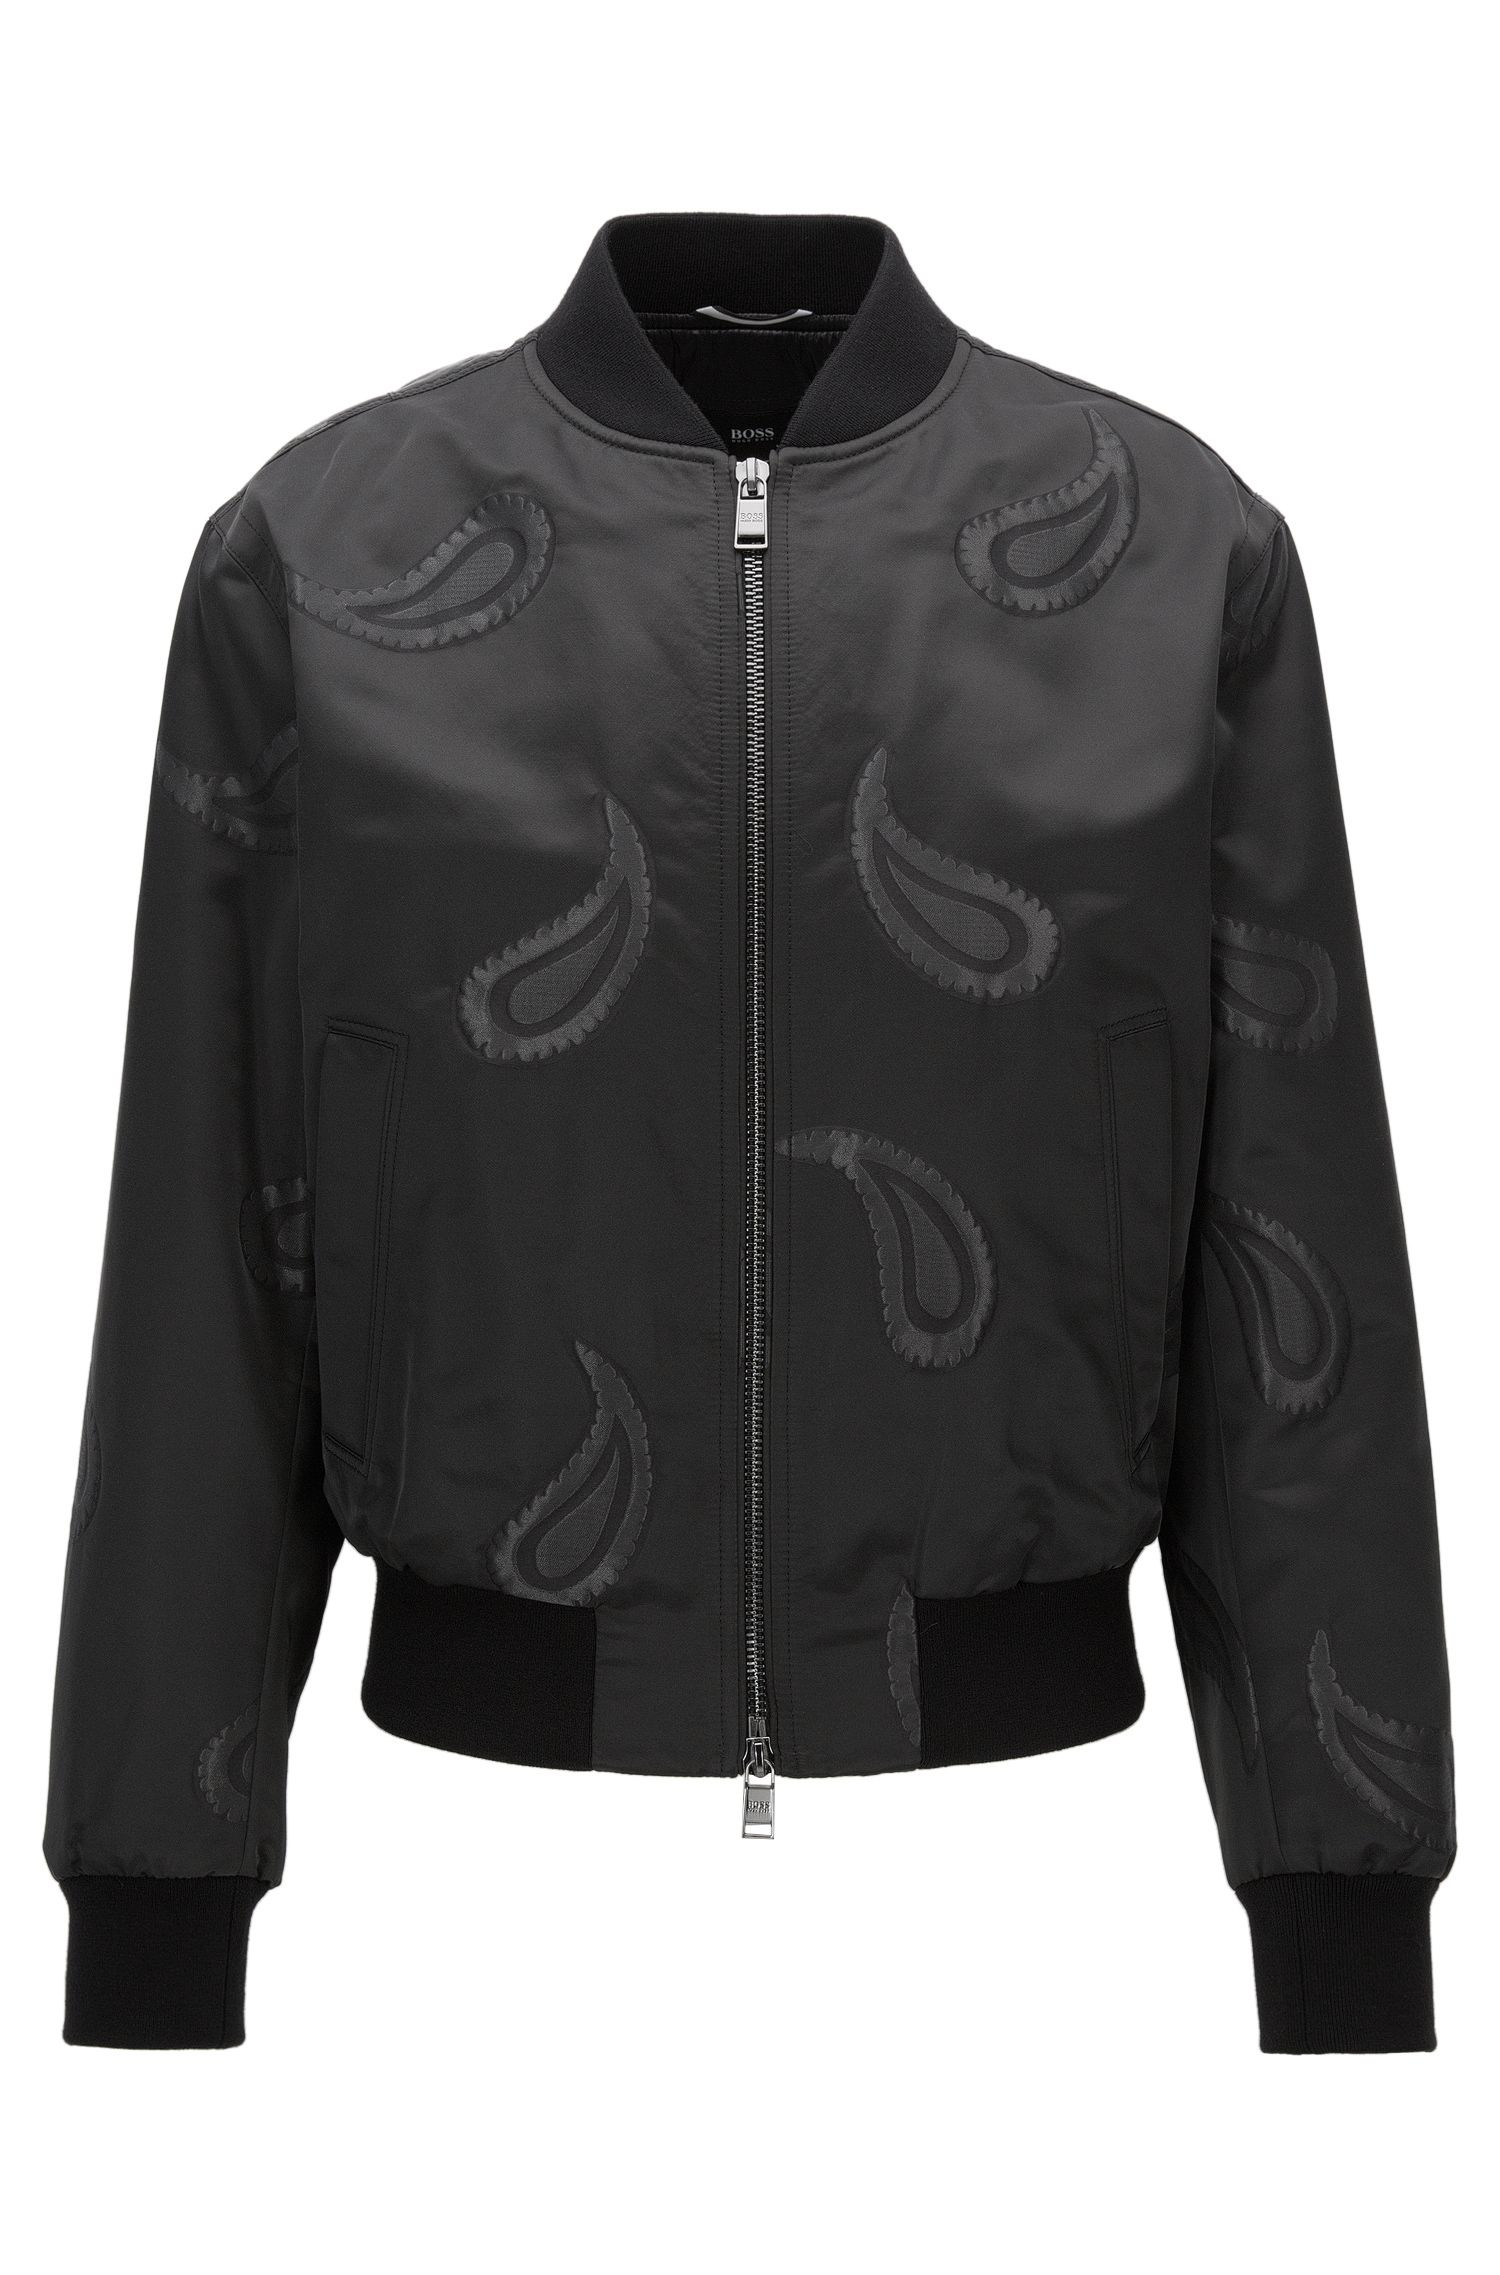 Regular-fit bomber jacket in a technical blend